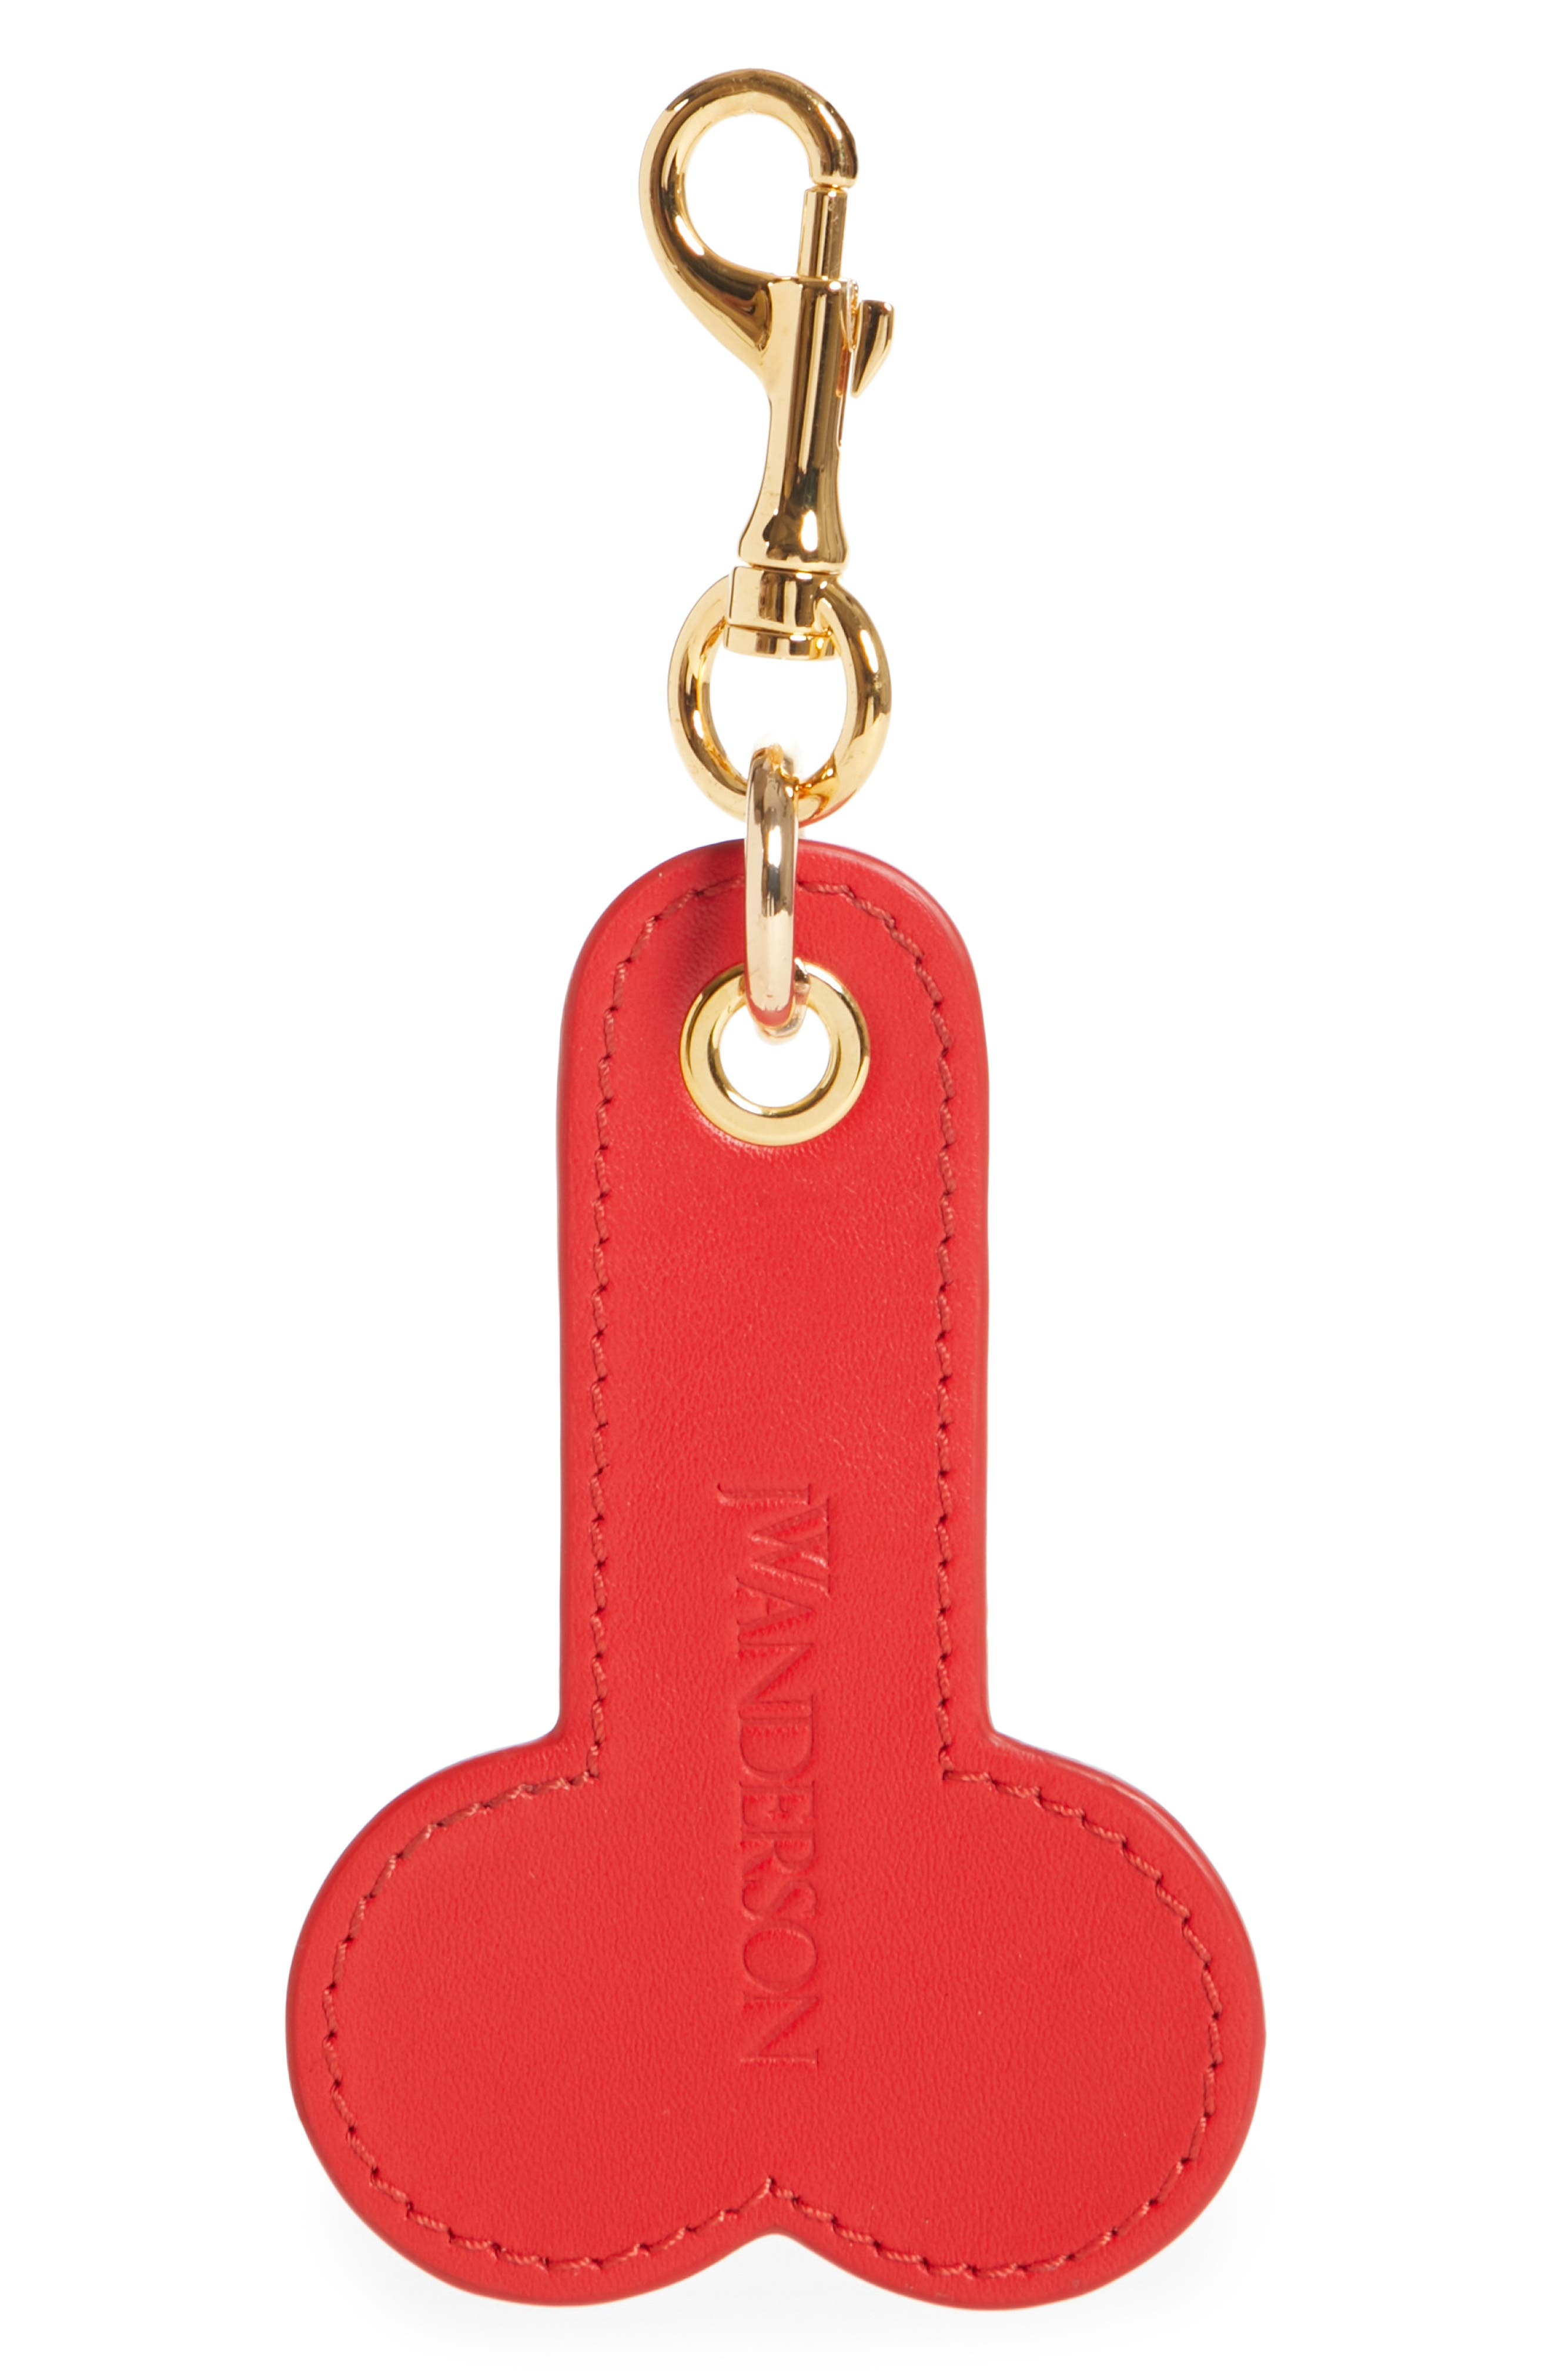 Logo Embossed Leather Bag Charm,                             Main thumbnail 1, color,                             020